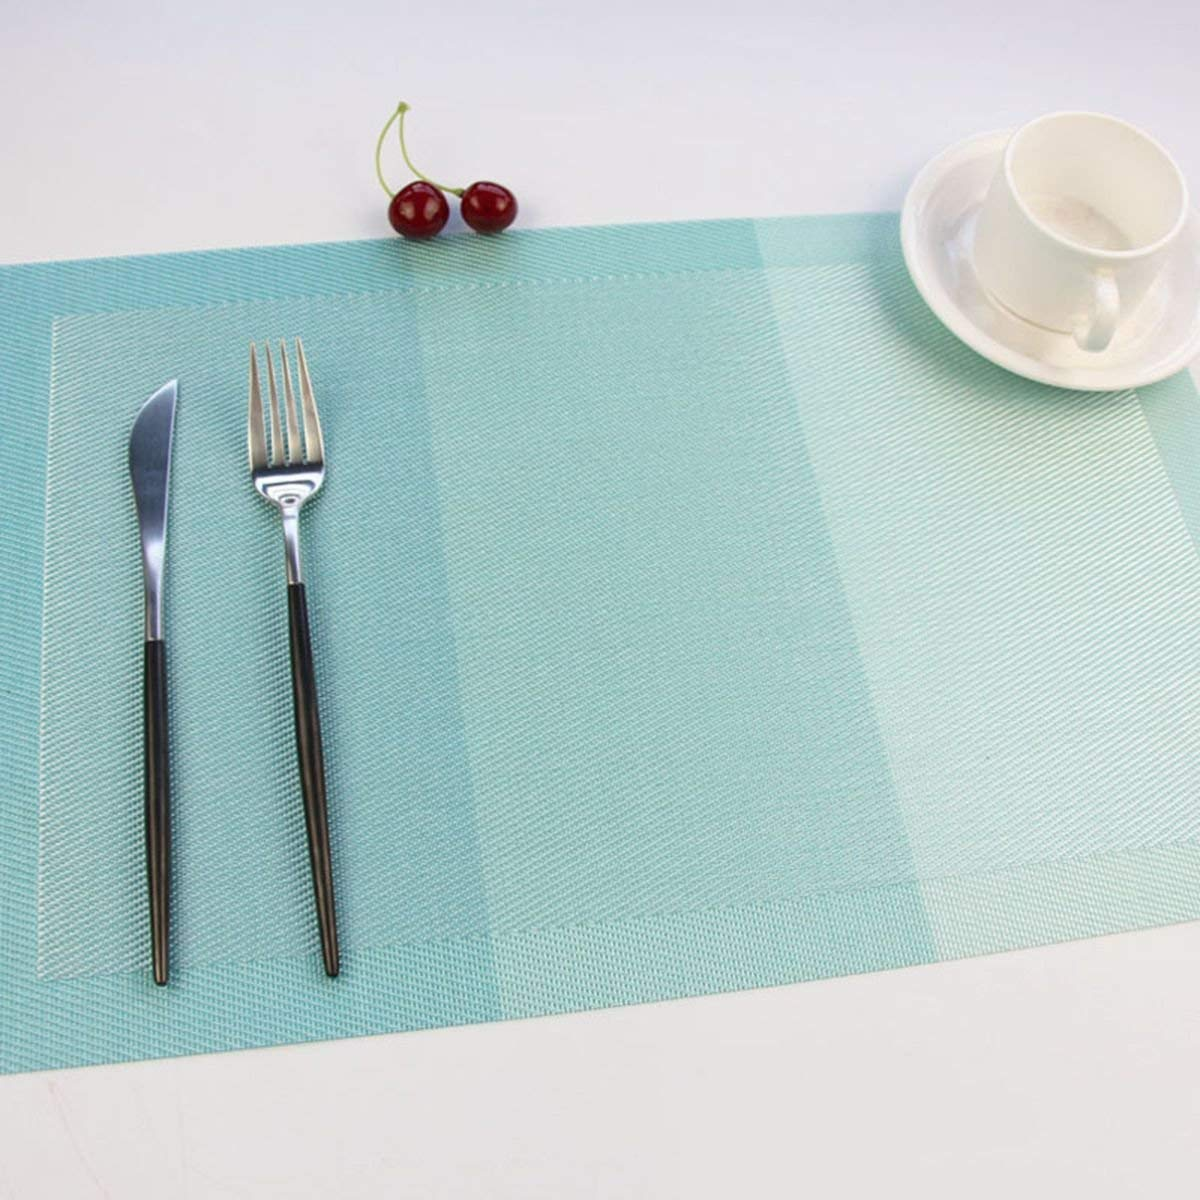 Yo FUN Waterproof Placemats Washable Non-Slip 45x30CM Rectangle Table Mats Set of 4 PVC Heat-Insulation Placemat Decoration for Home, Kitchen, Hotel - Blue